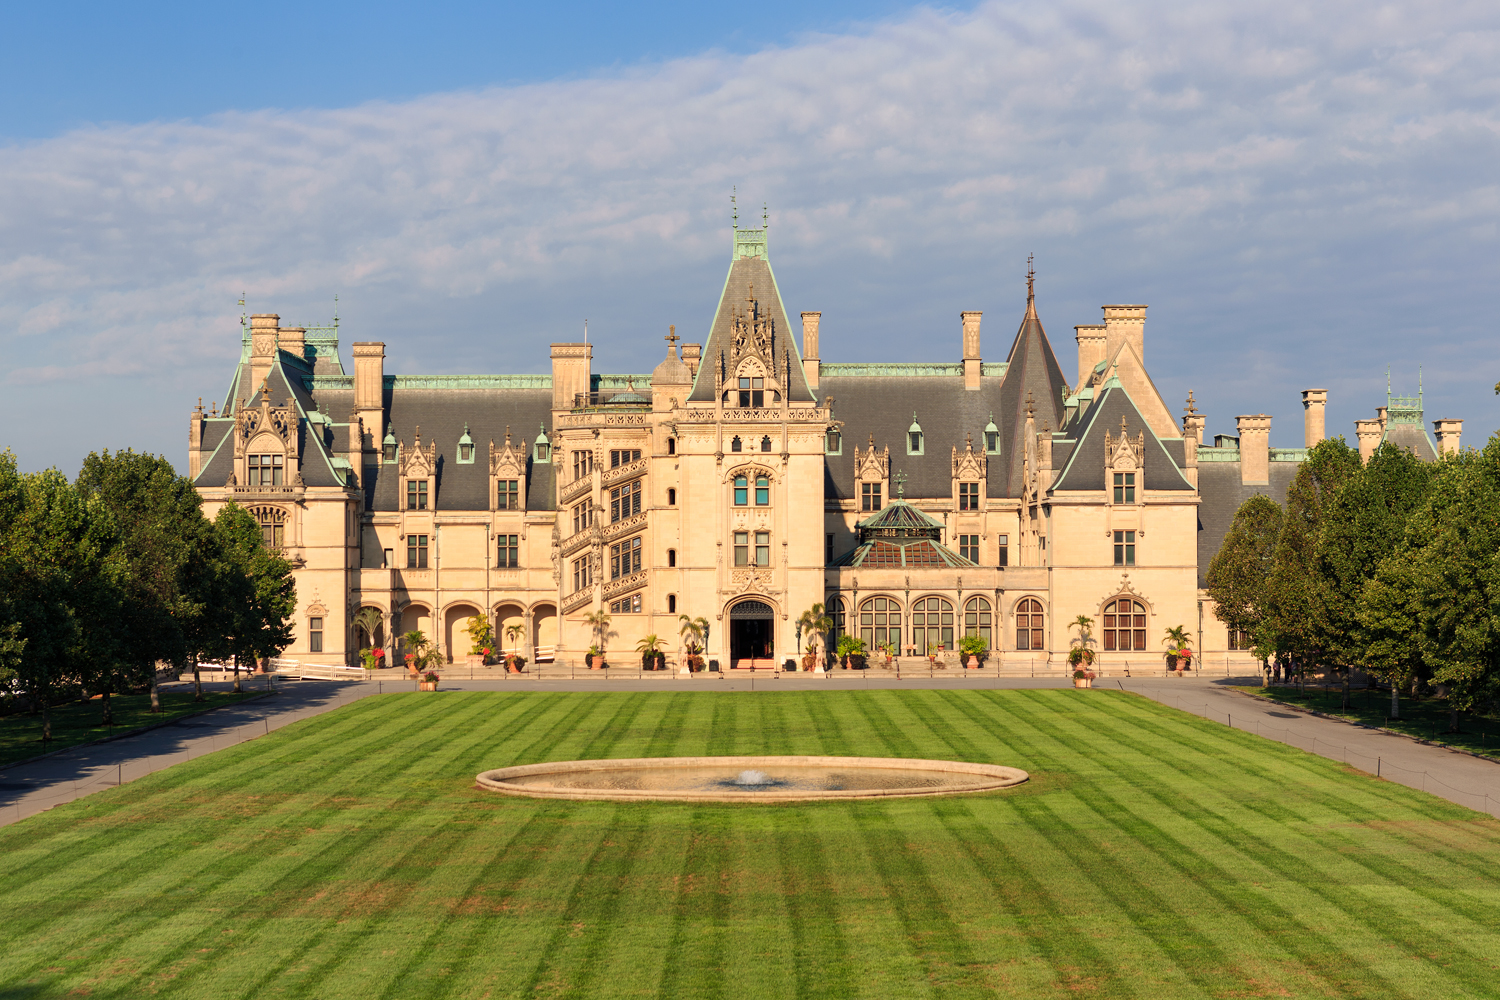 Panoramic view of the green grass of the Biltmore Estate located in Asheville, NC